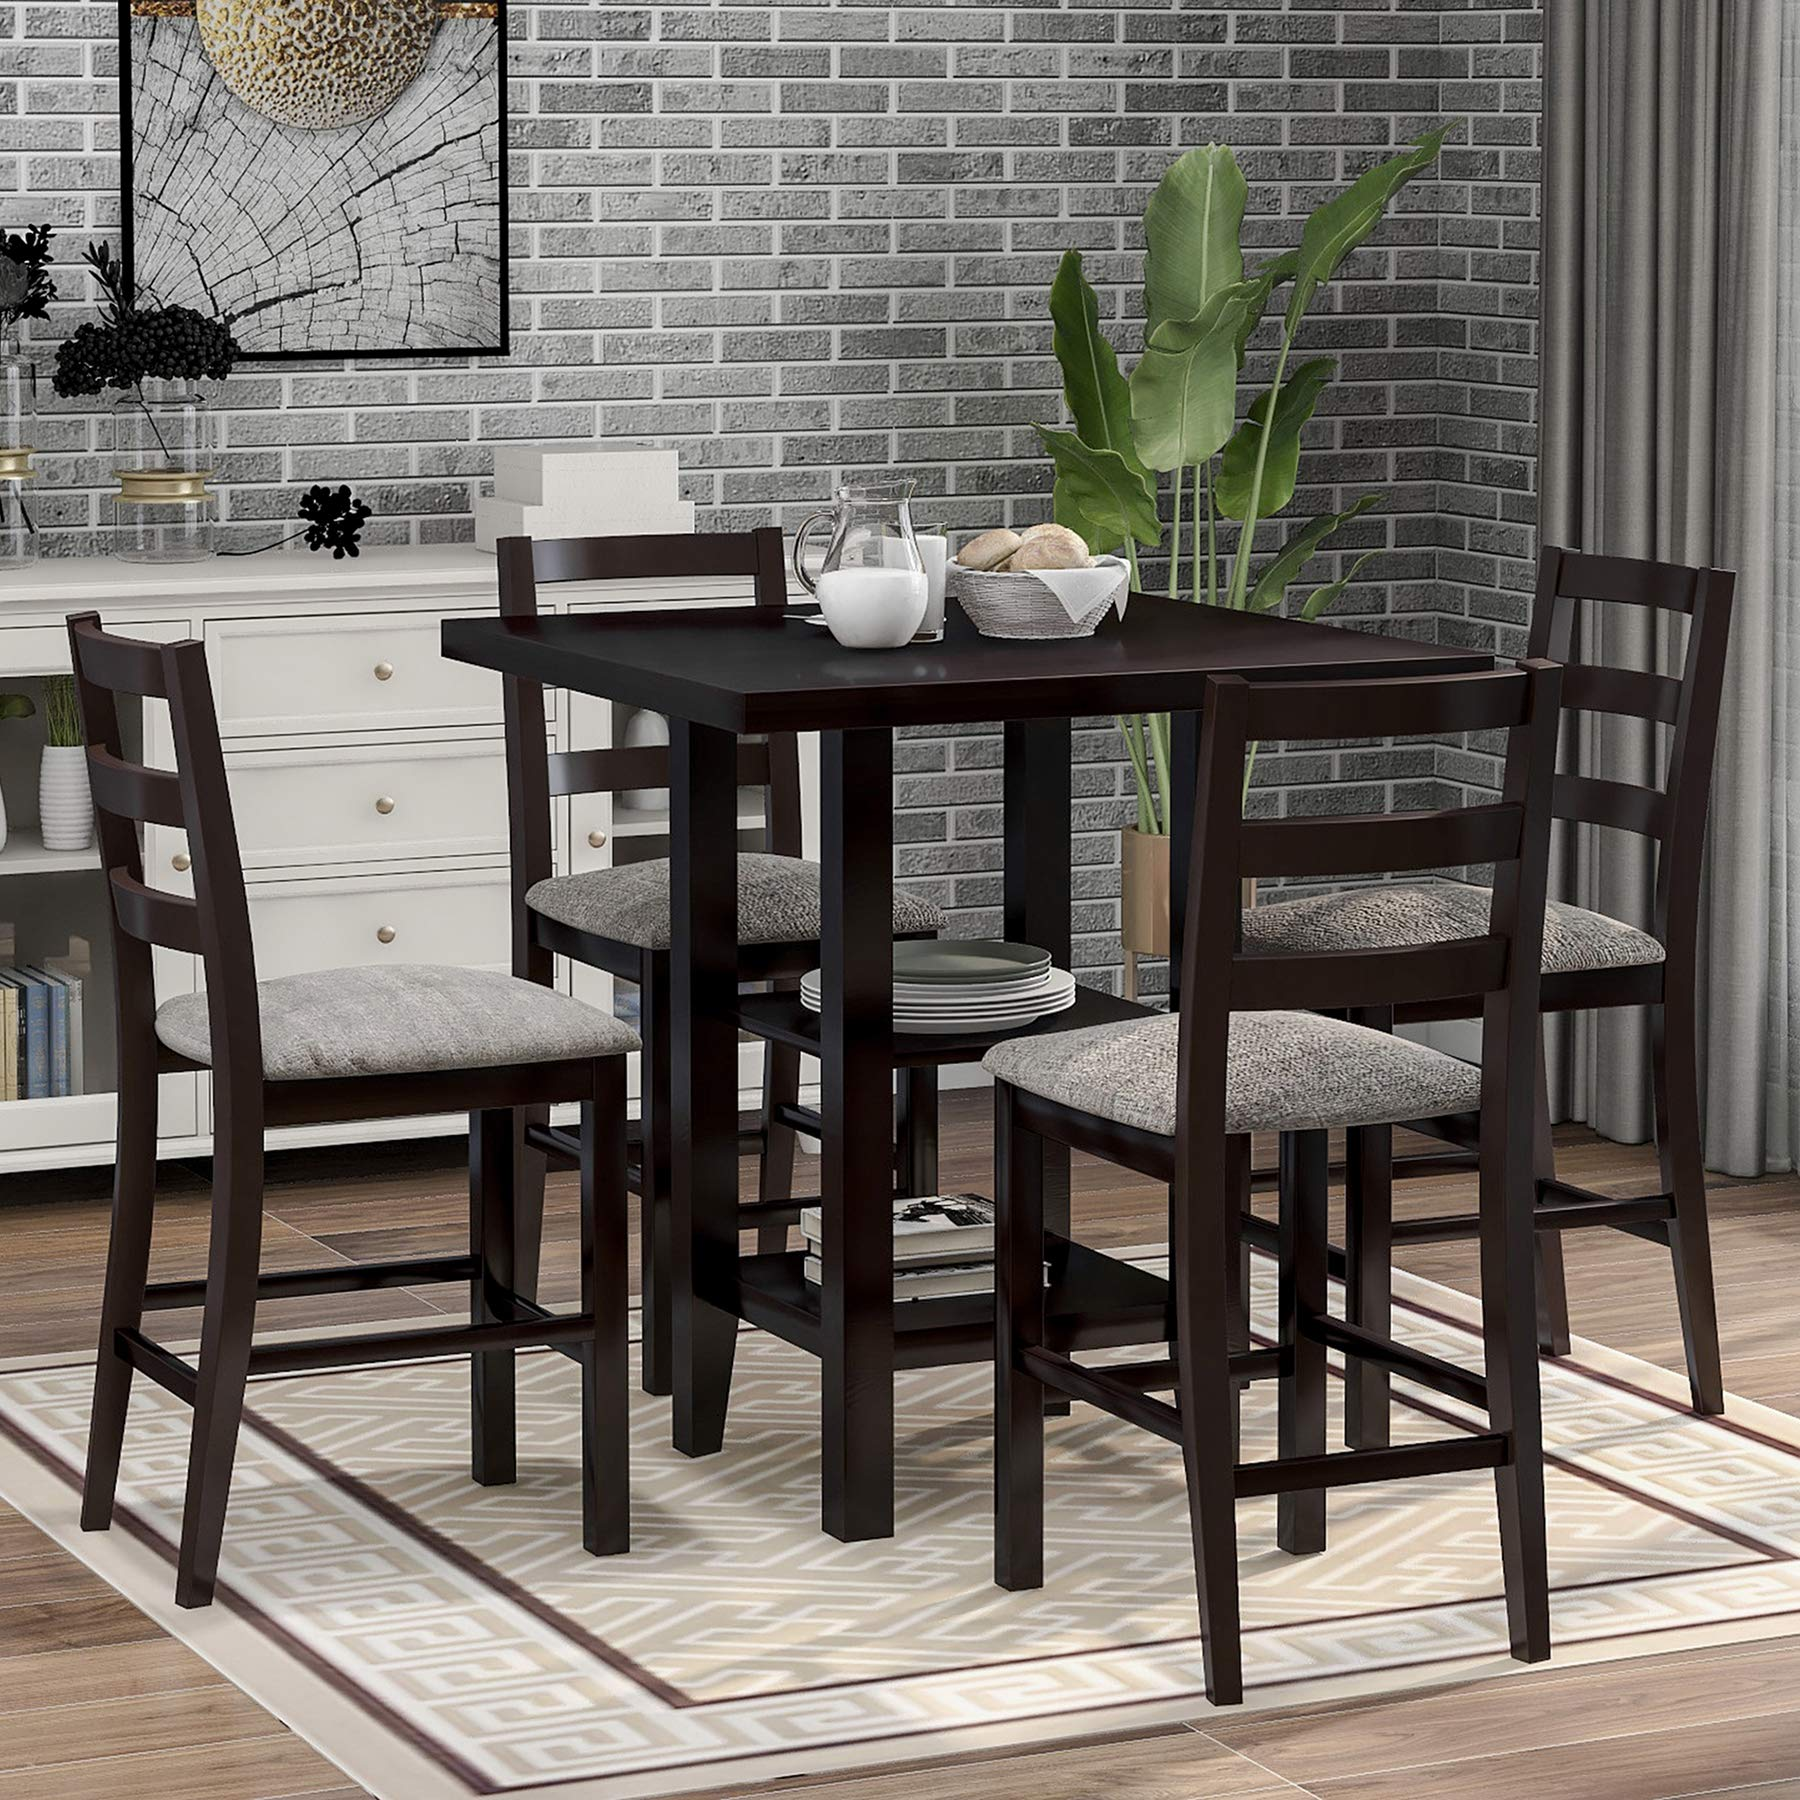 Merax 5 Piece Dining Table Set Wood Counter Height Dining Set Square Kitchen Table with 2-Tier Storage Shelving and 4 Padded Chairs (Espresso)